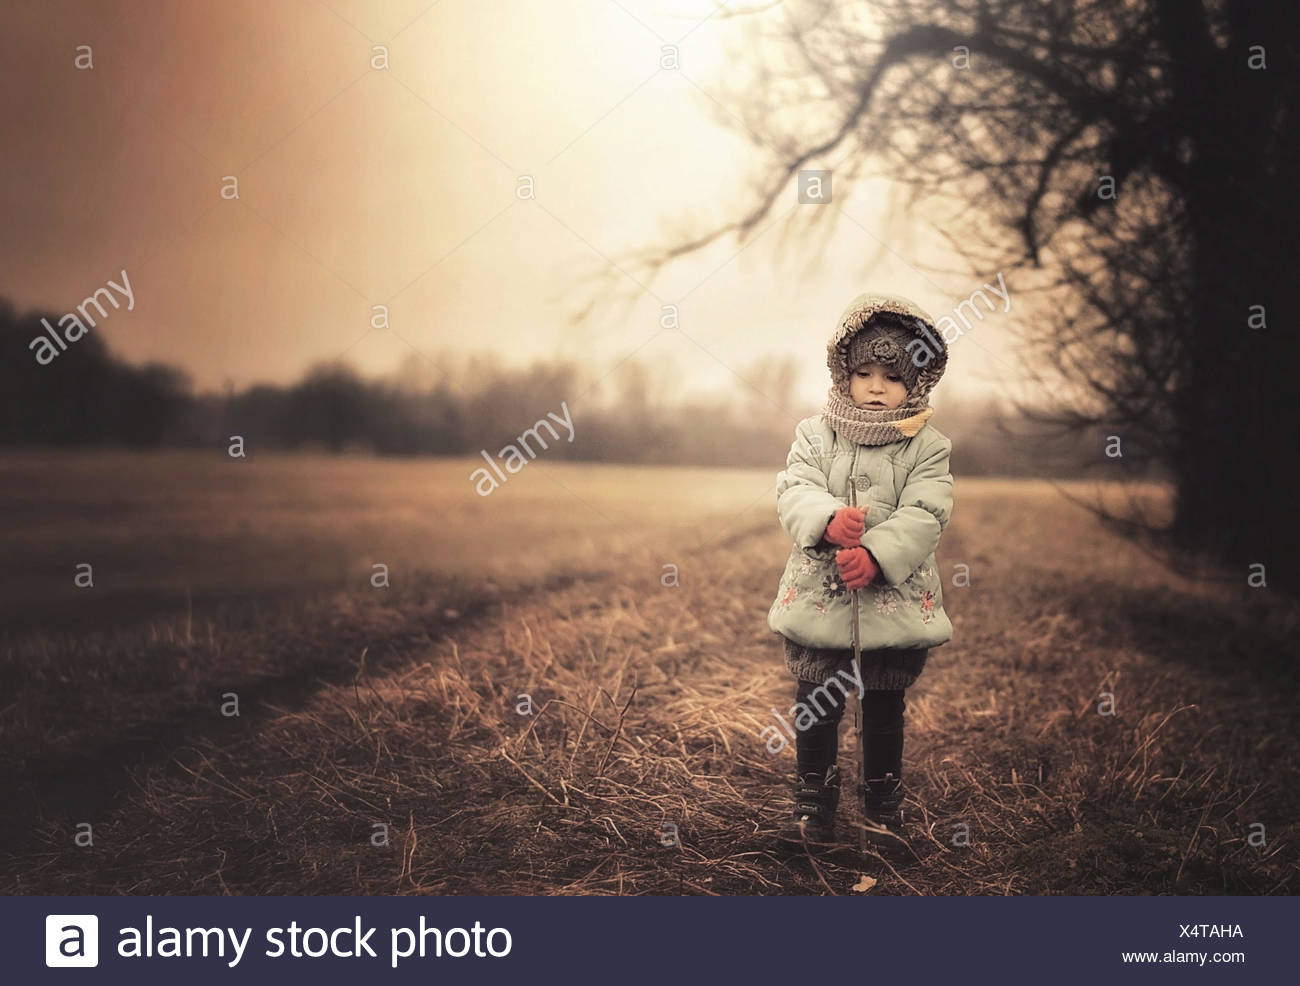 Poland, Girl wearing warm clothes standing on field - Stock Image